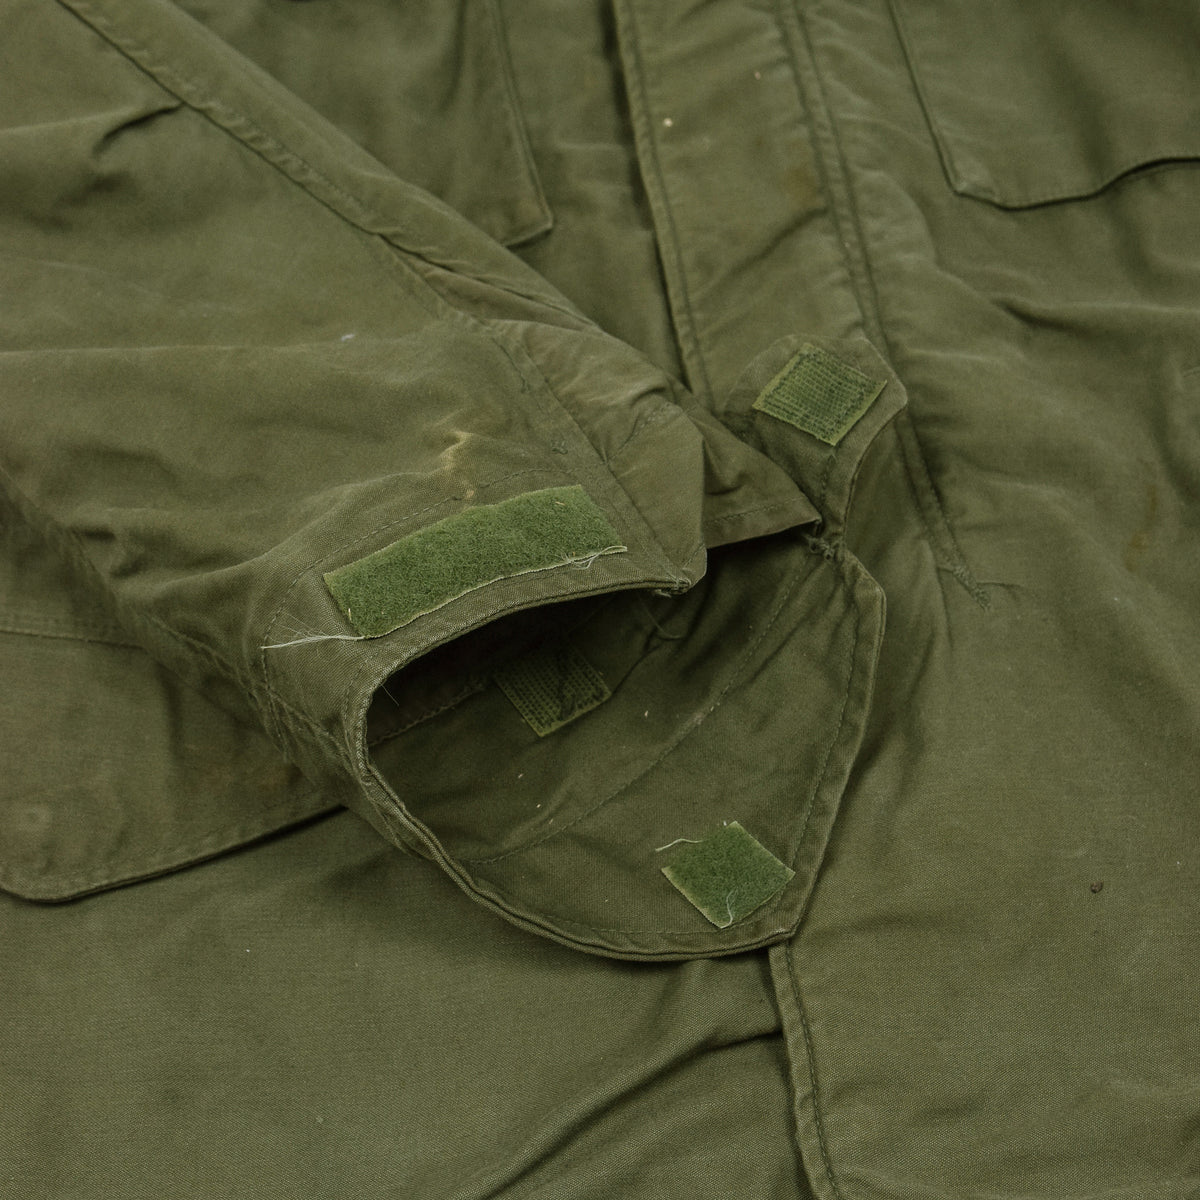 Vintage 60s Vietnam M-65 Man's Field Sateen 0G-107 Green US Army Coat S / M cuff